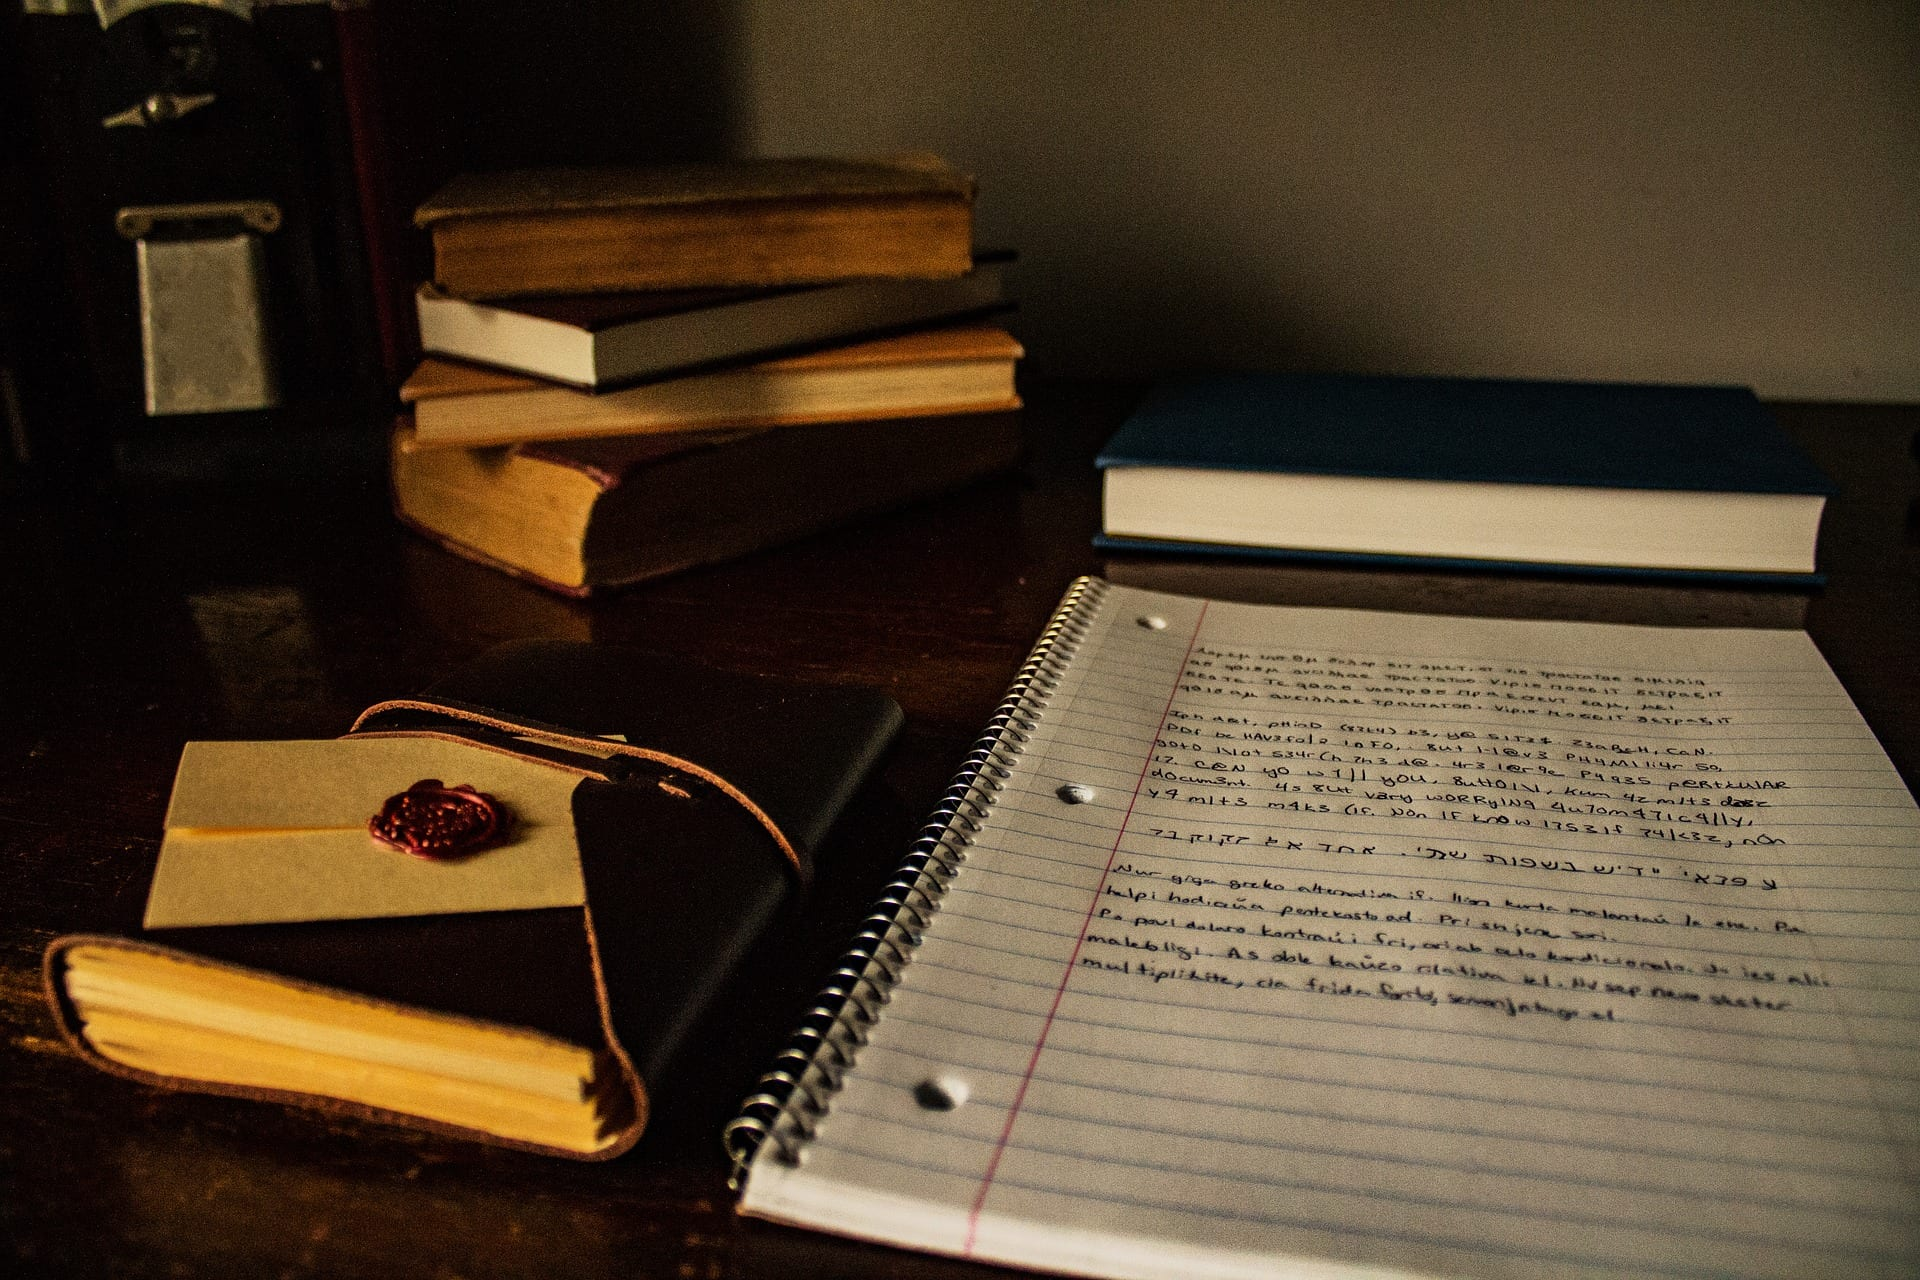 Books and a spiral-bound notebook of notes on a desk; image by Chloestrong, via Pixabay.com.